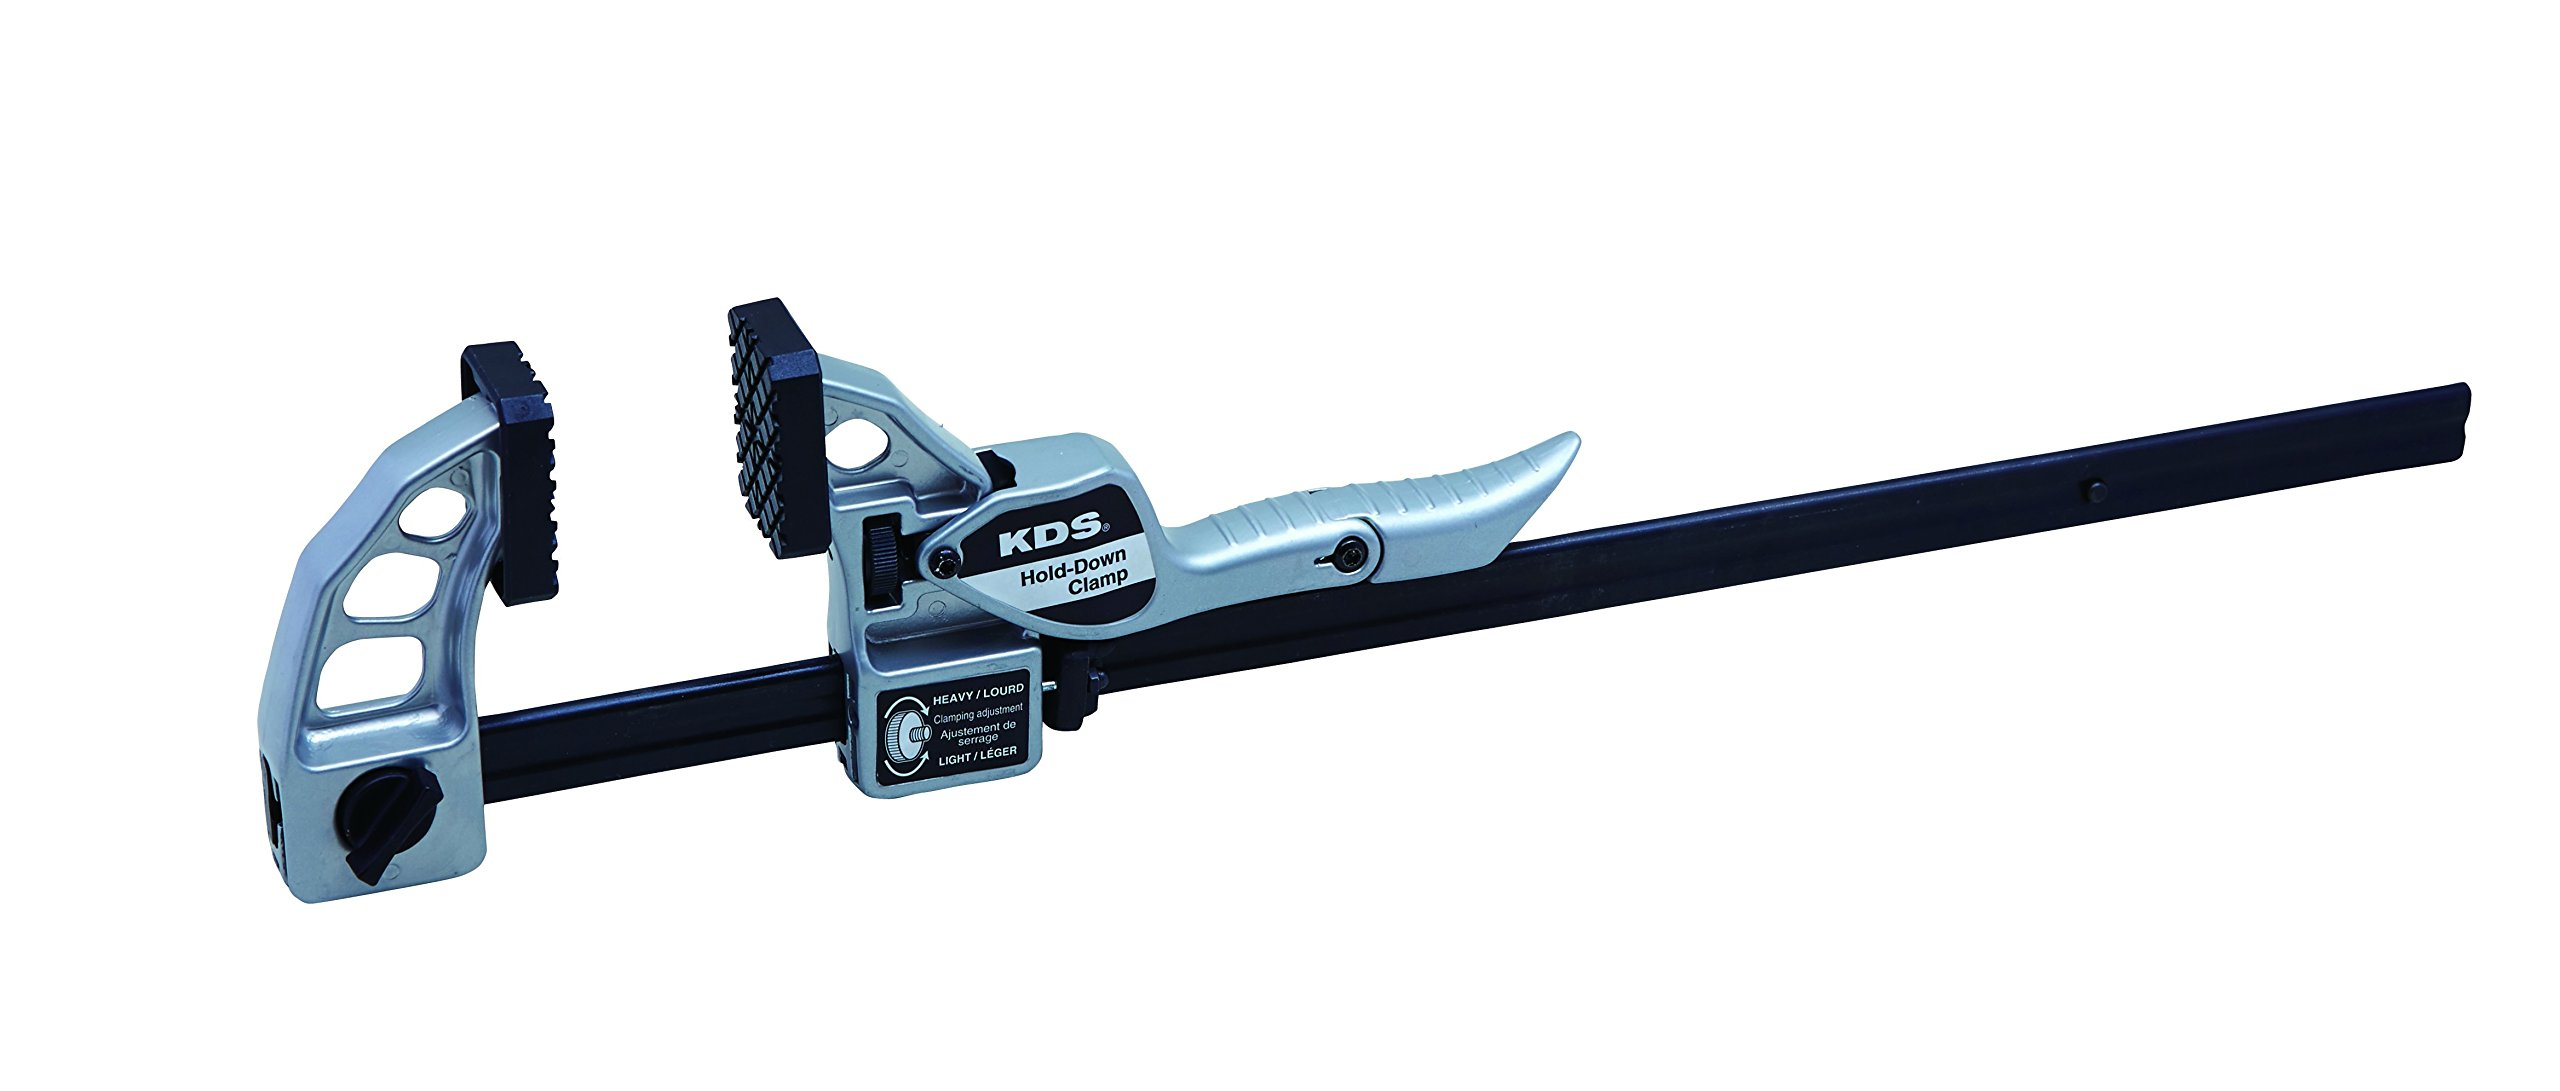 KDS MWB-150 Metal-Jaw Hold-Down Clamp, 6'', Silver